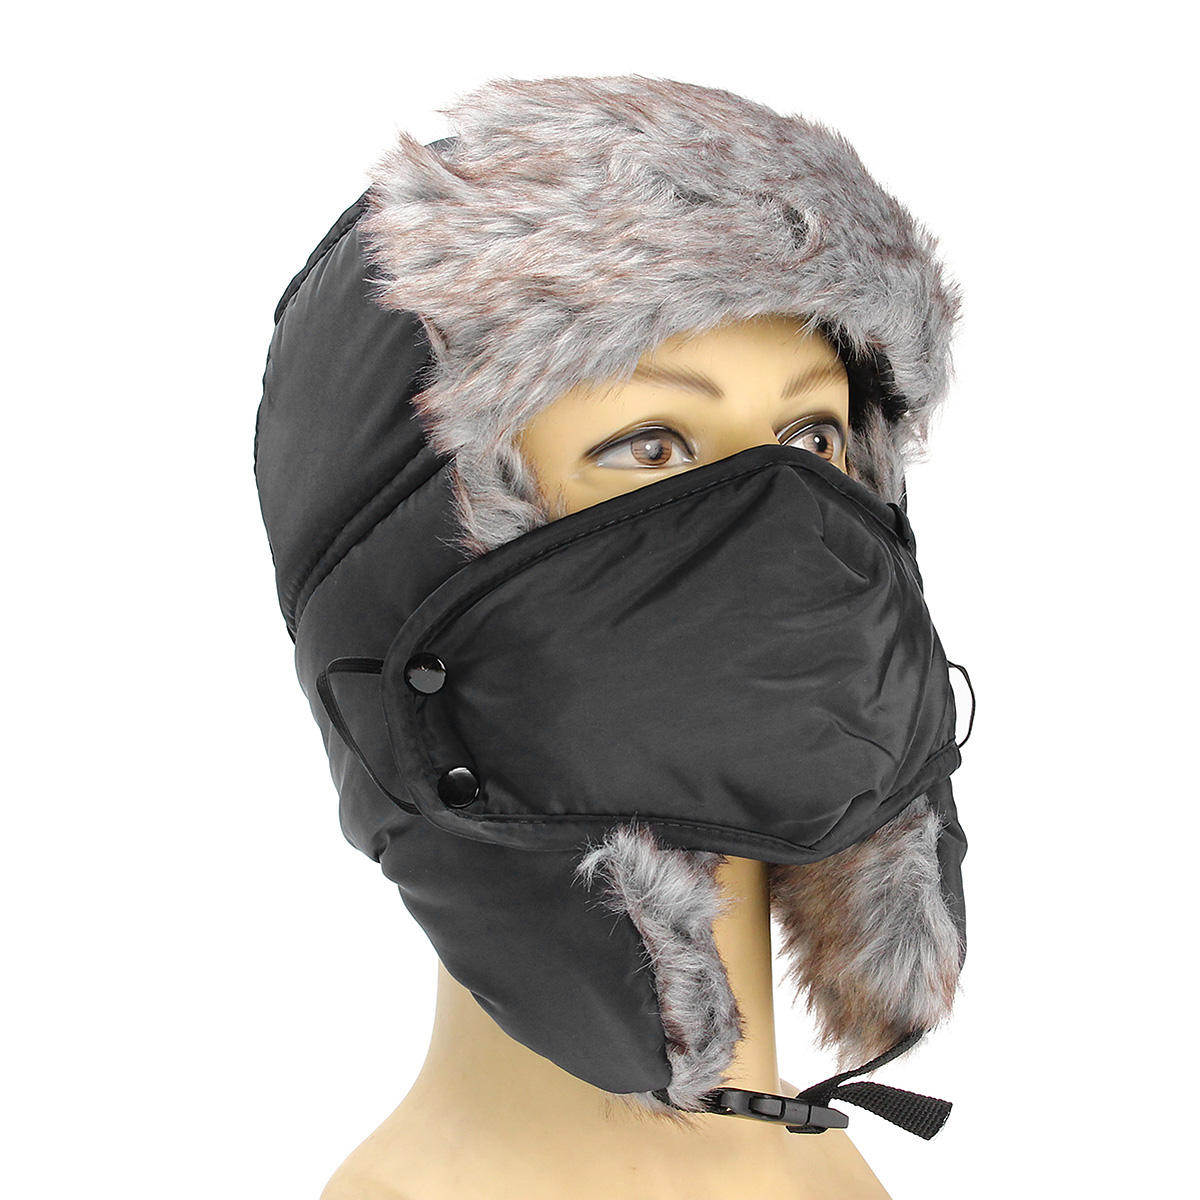 Motorcycle Full Face Mask Cap Cover Windproof Outdoor Guard Winter Ski Protector